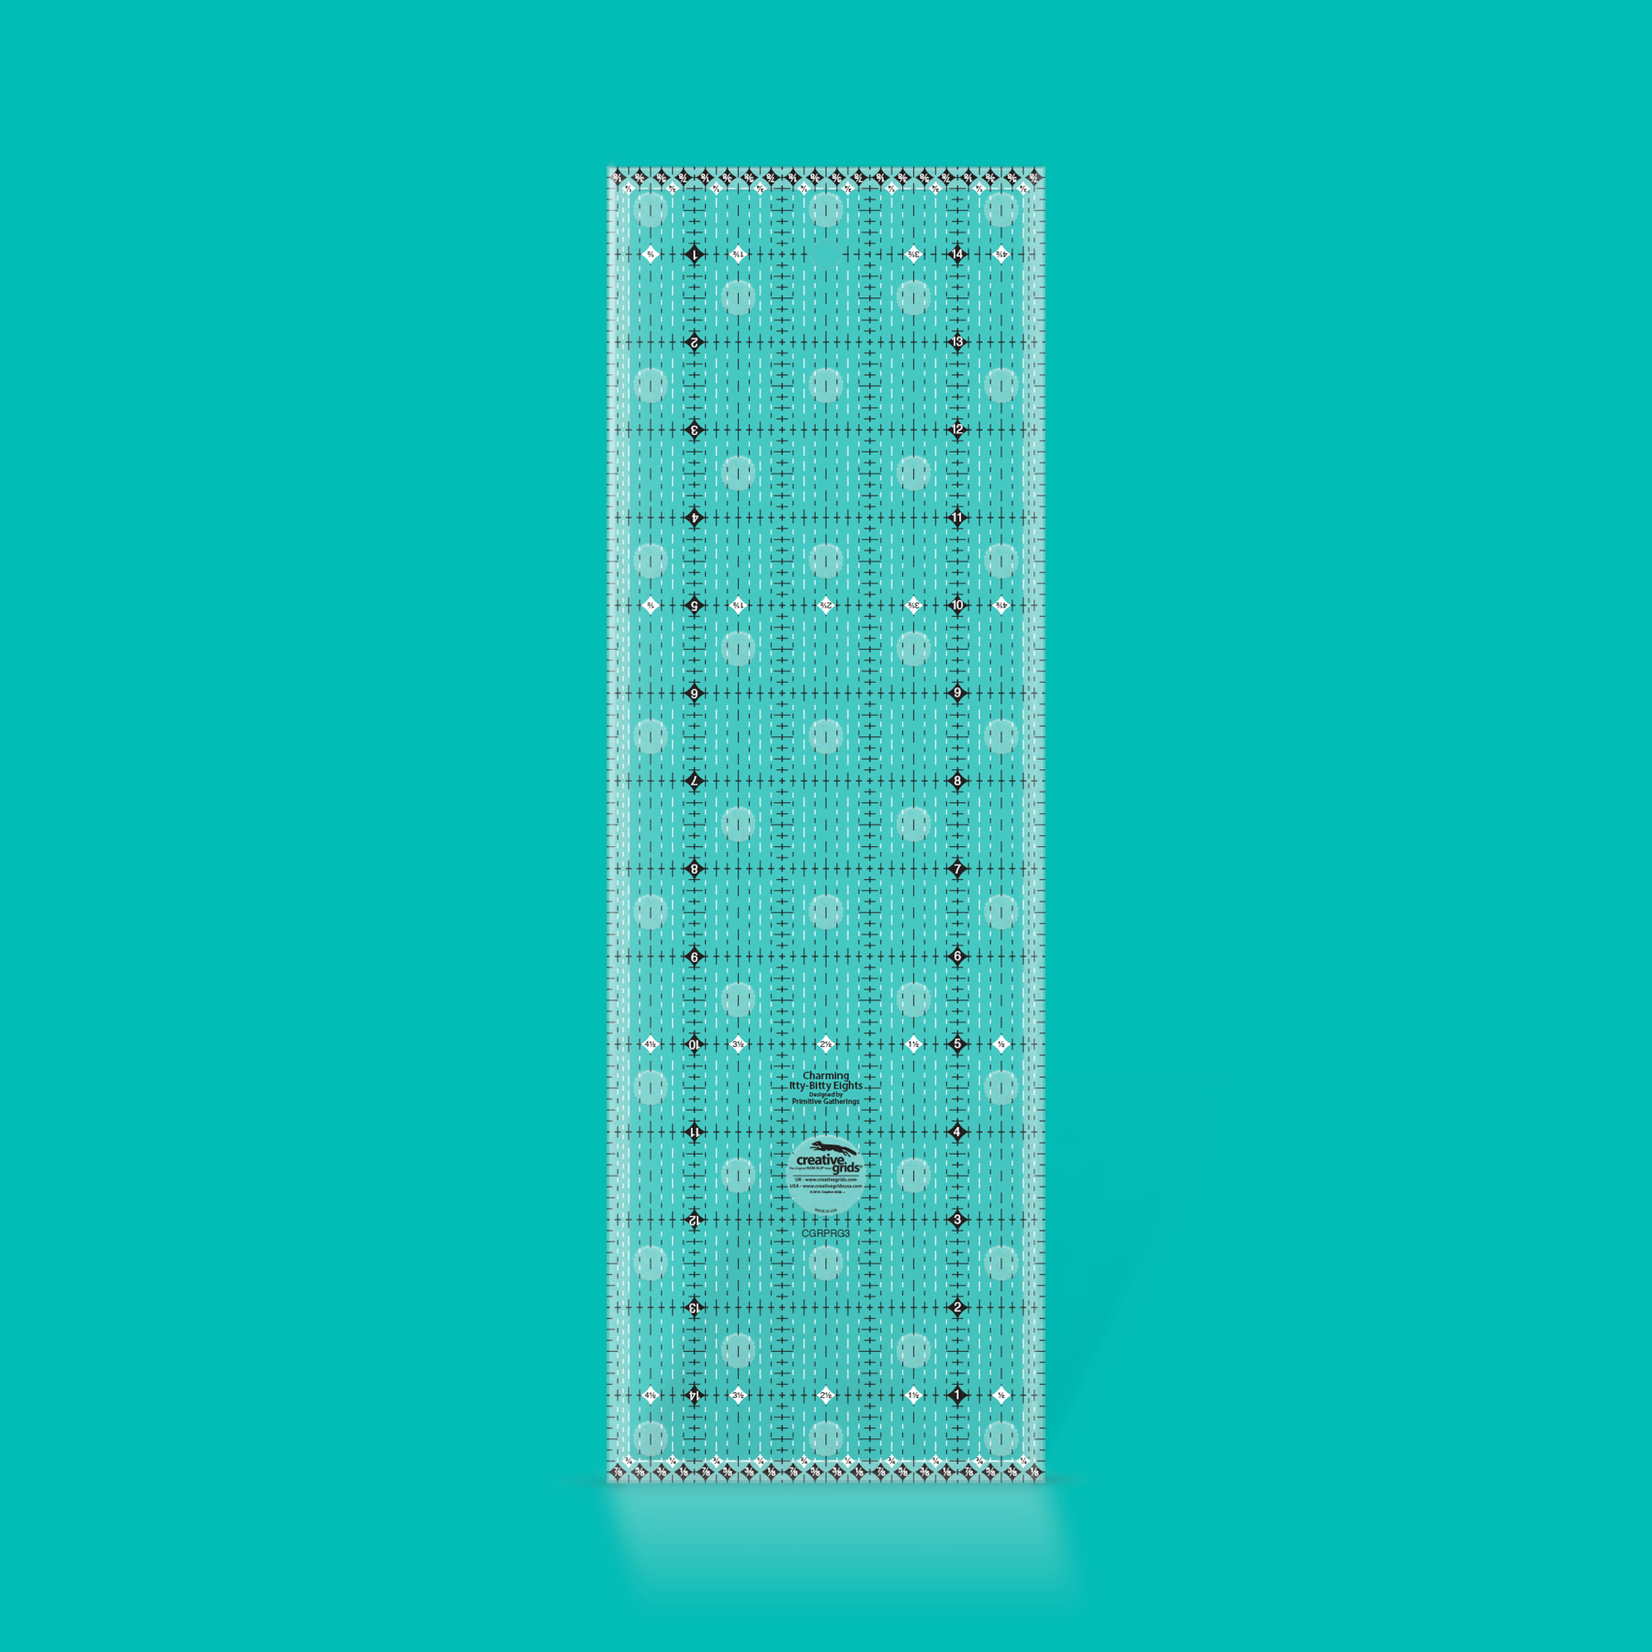 Creative Grids Creative Grids Charming Itty Bitty Eights CGRPRG3